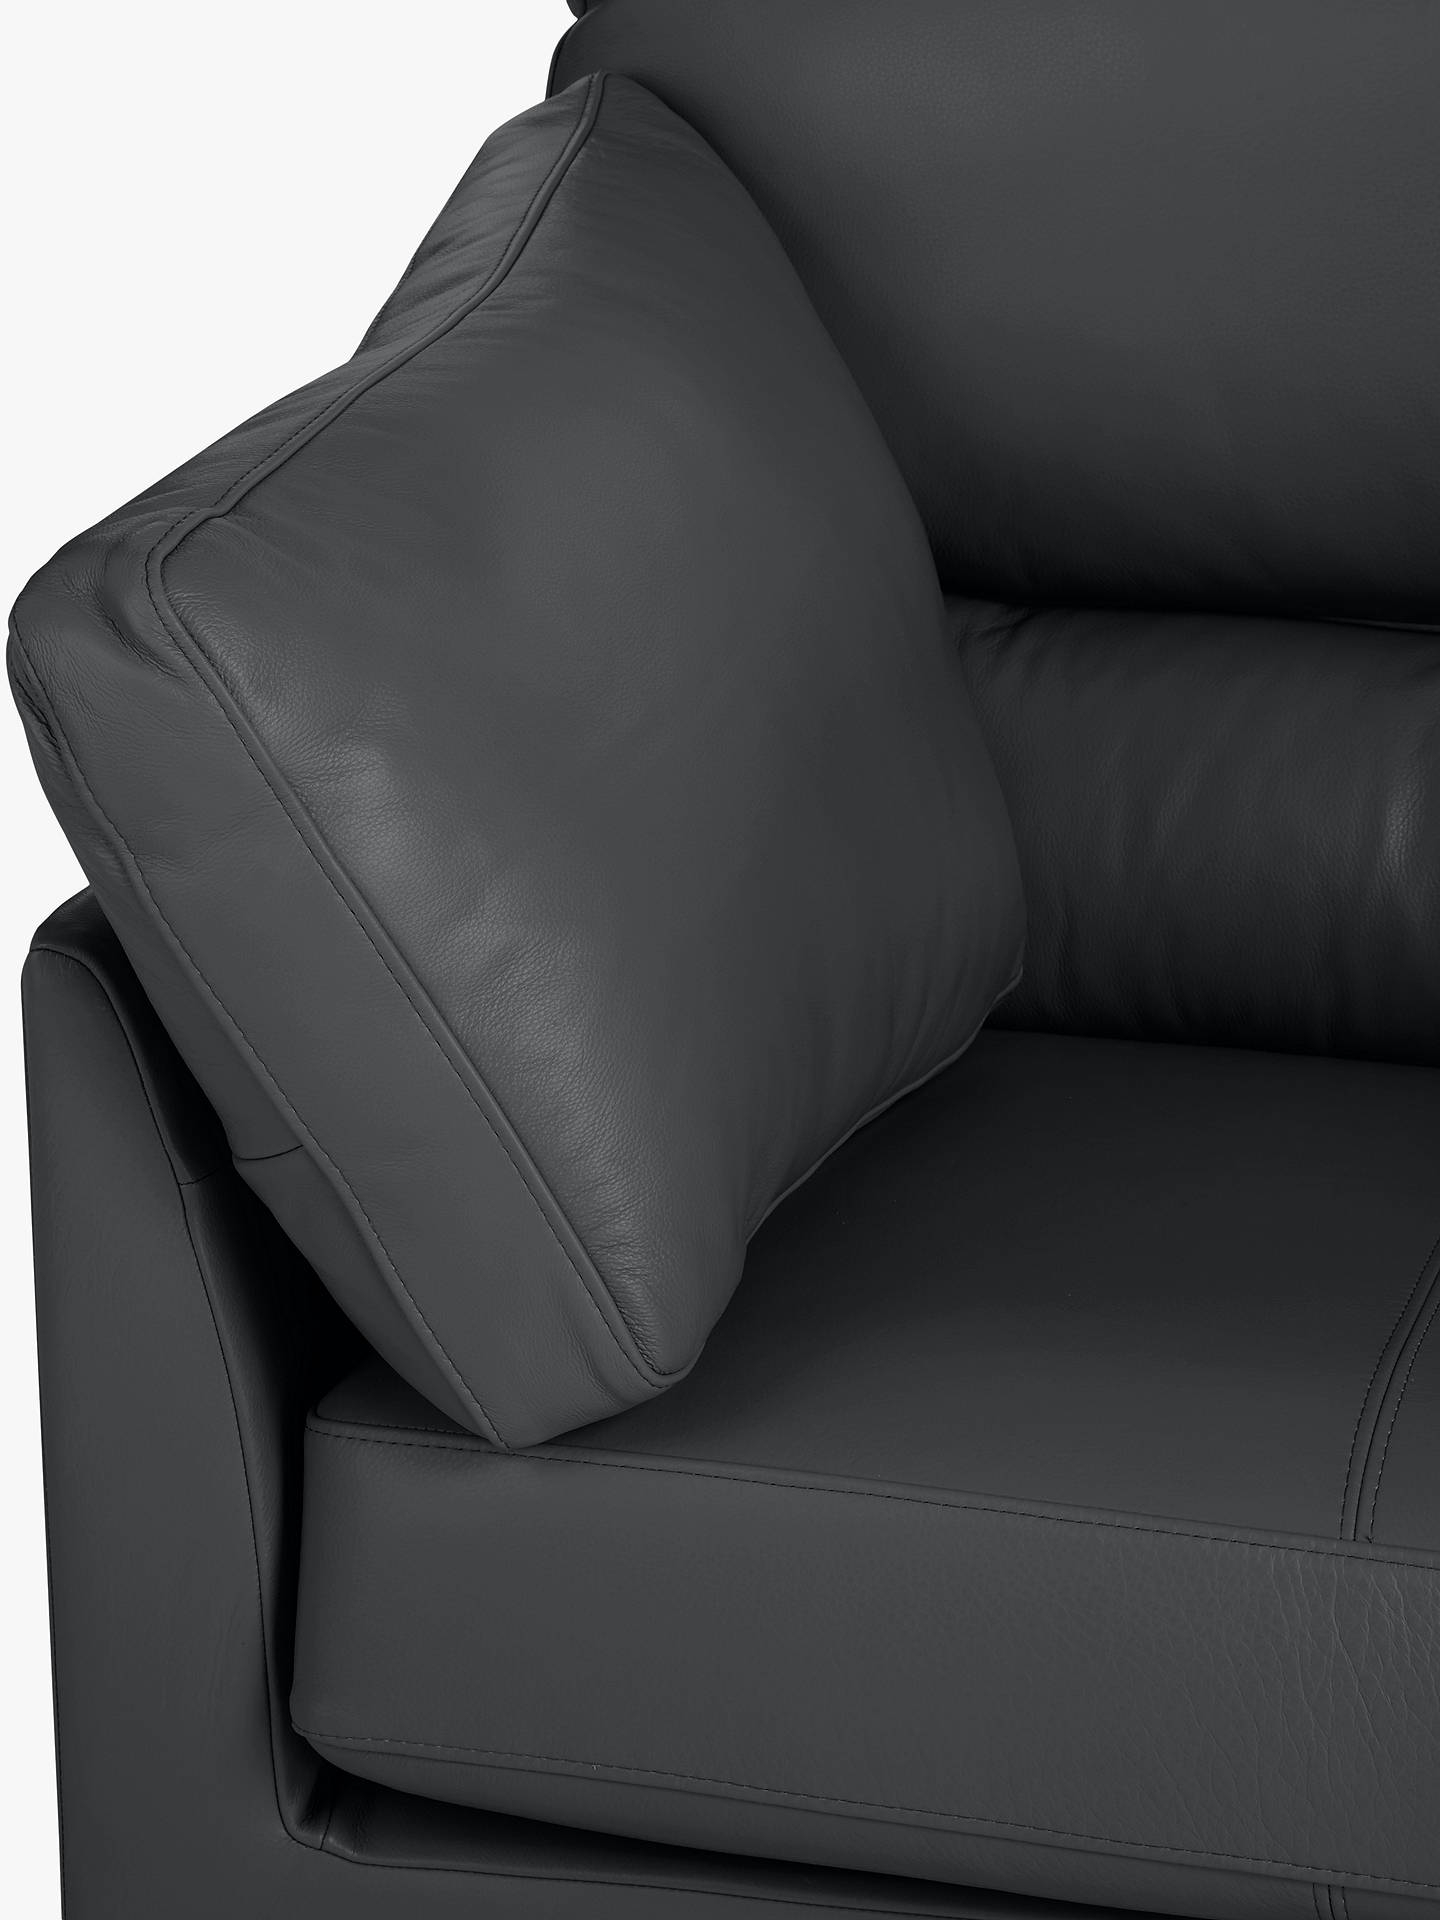 Buy John Lewis & Partners Ikon High Back Leather Armchair, Dark Leg, Winchester Anthracite Online at johnlewis.com